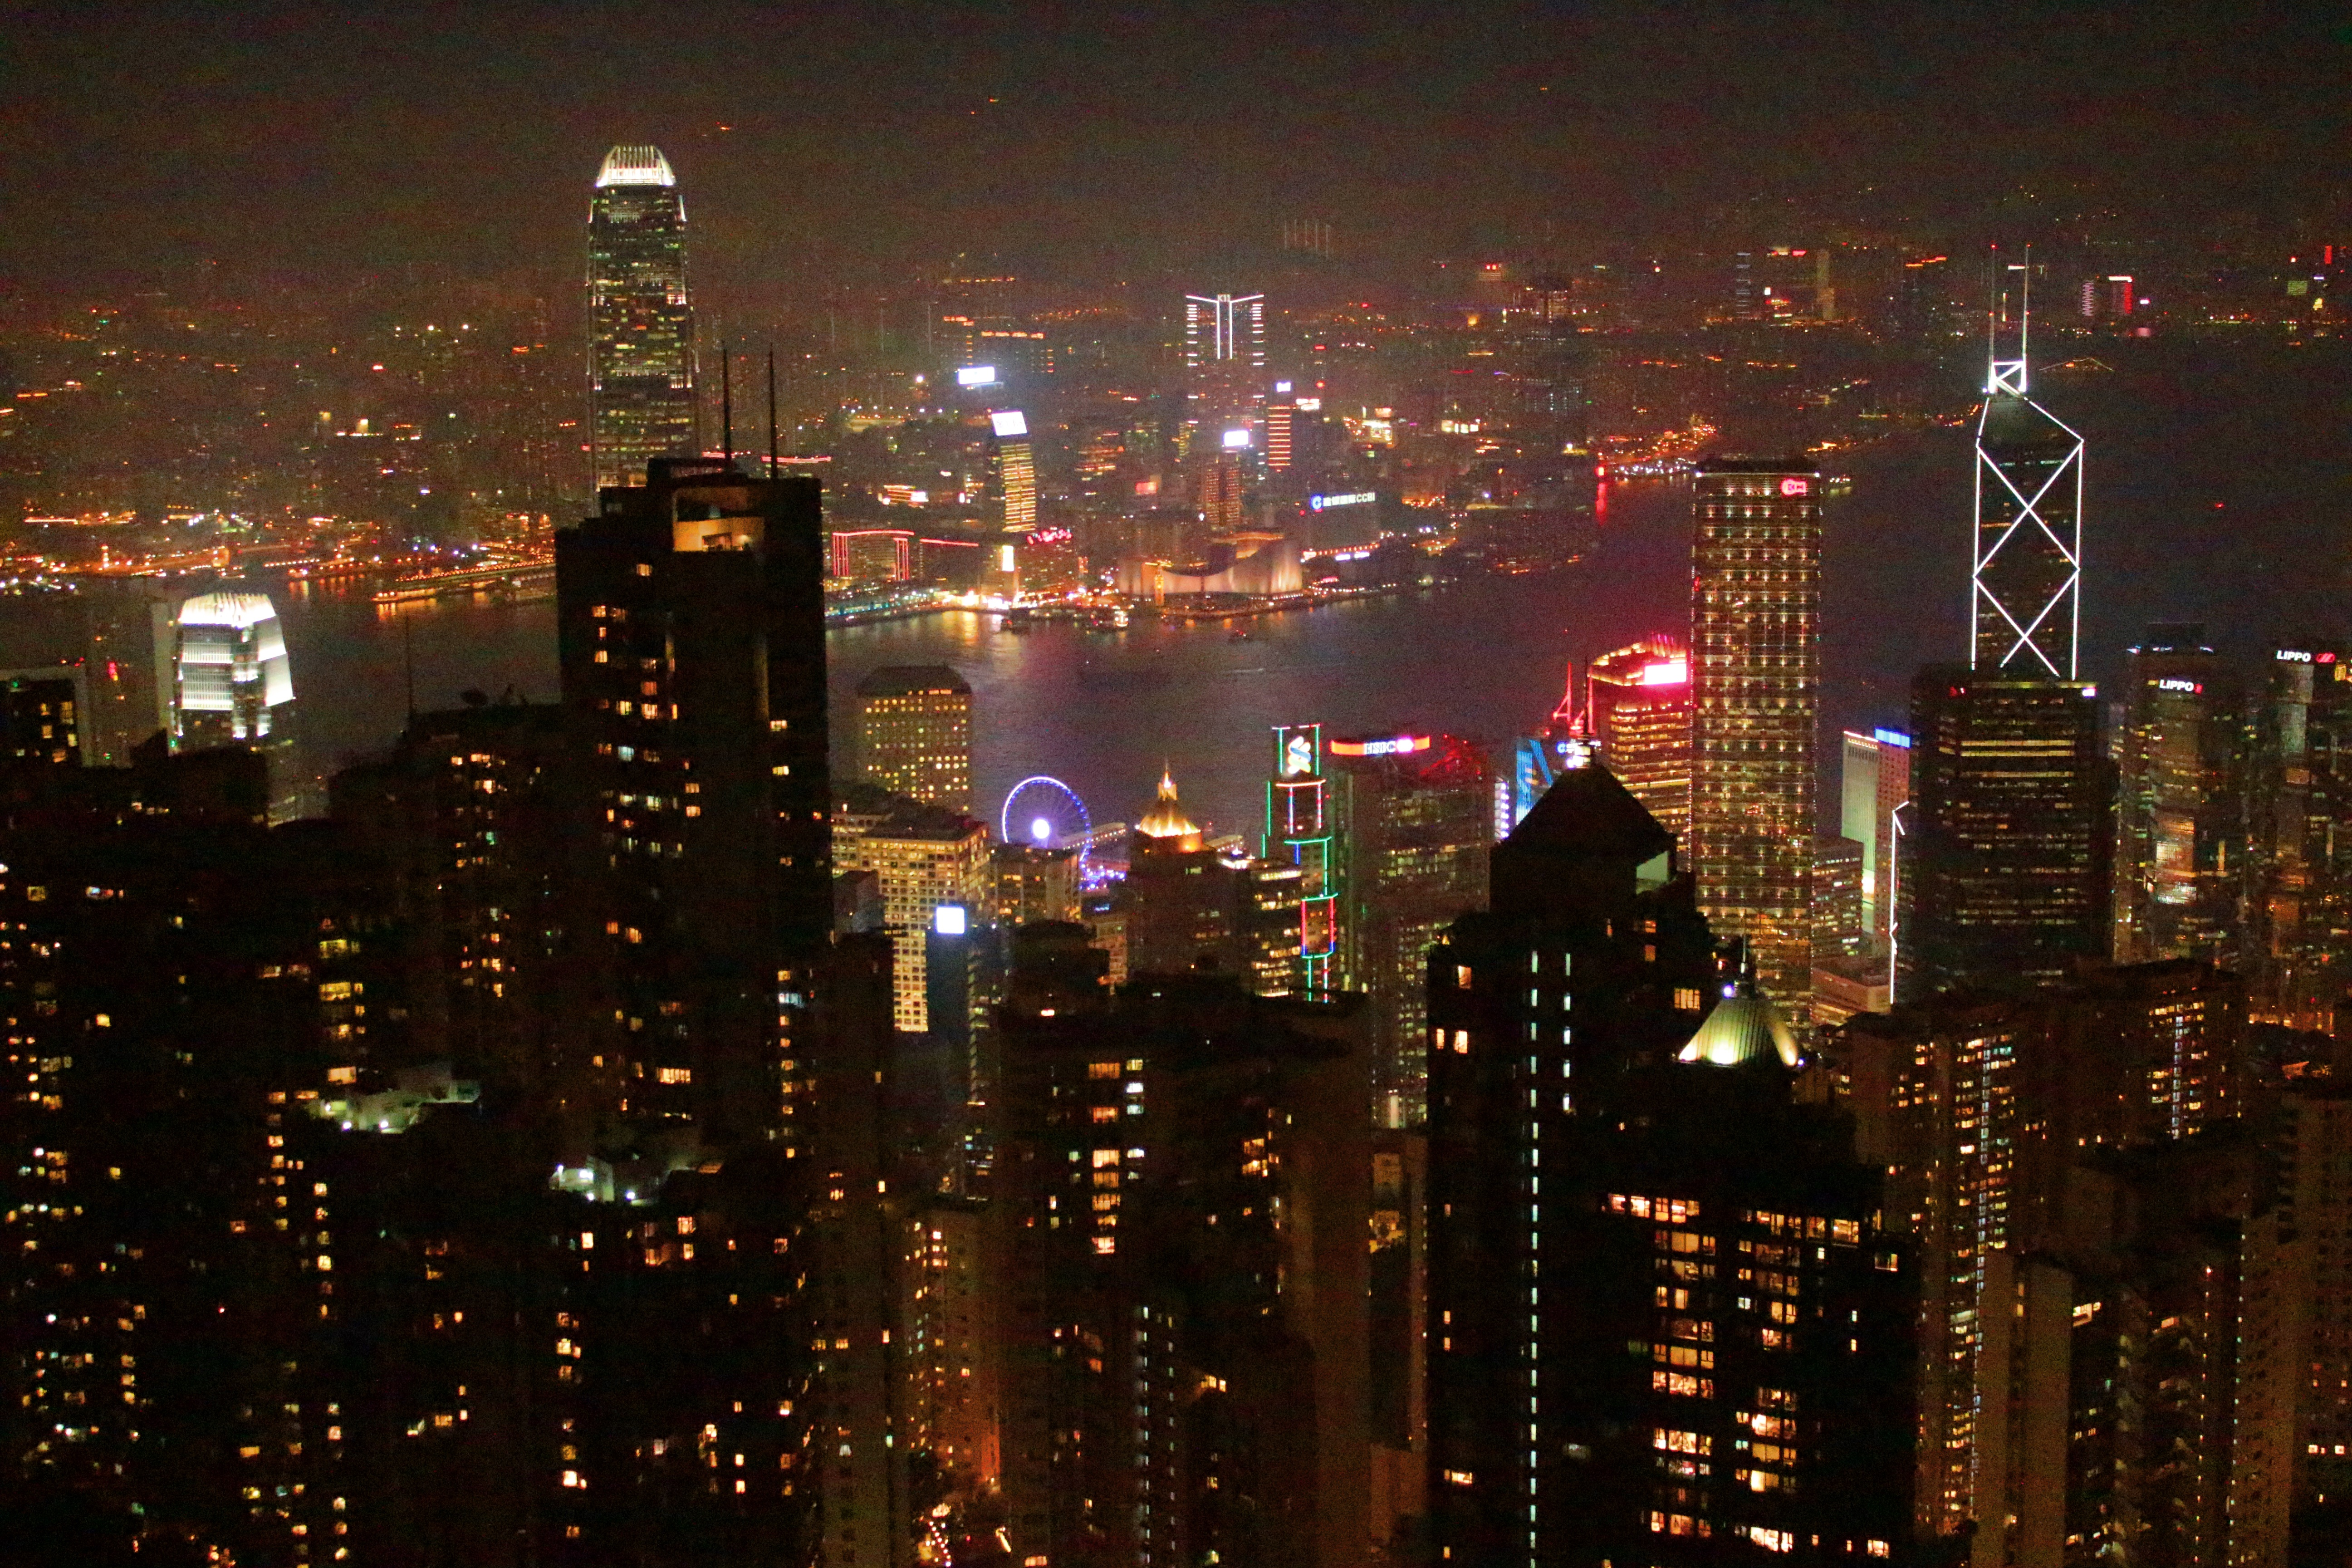 Travelogue: Stopover in Hong Kong for 3 days